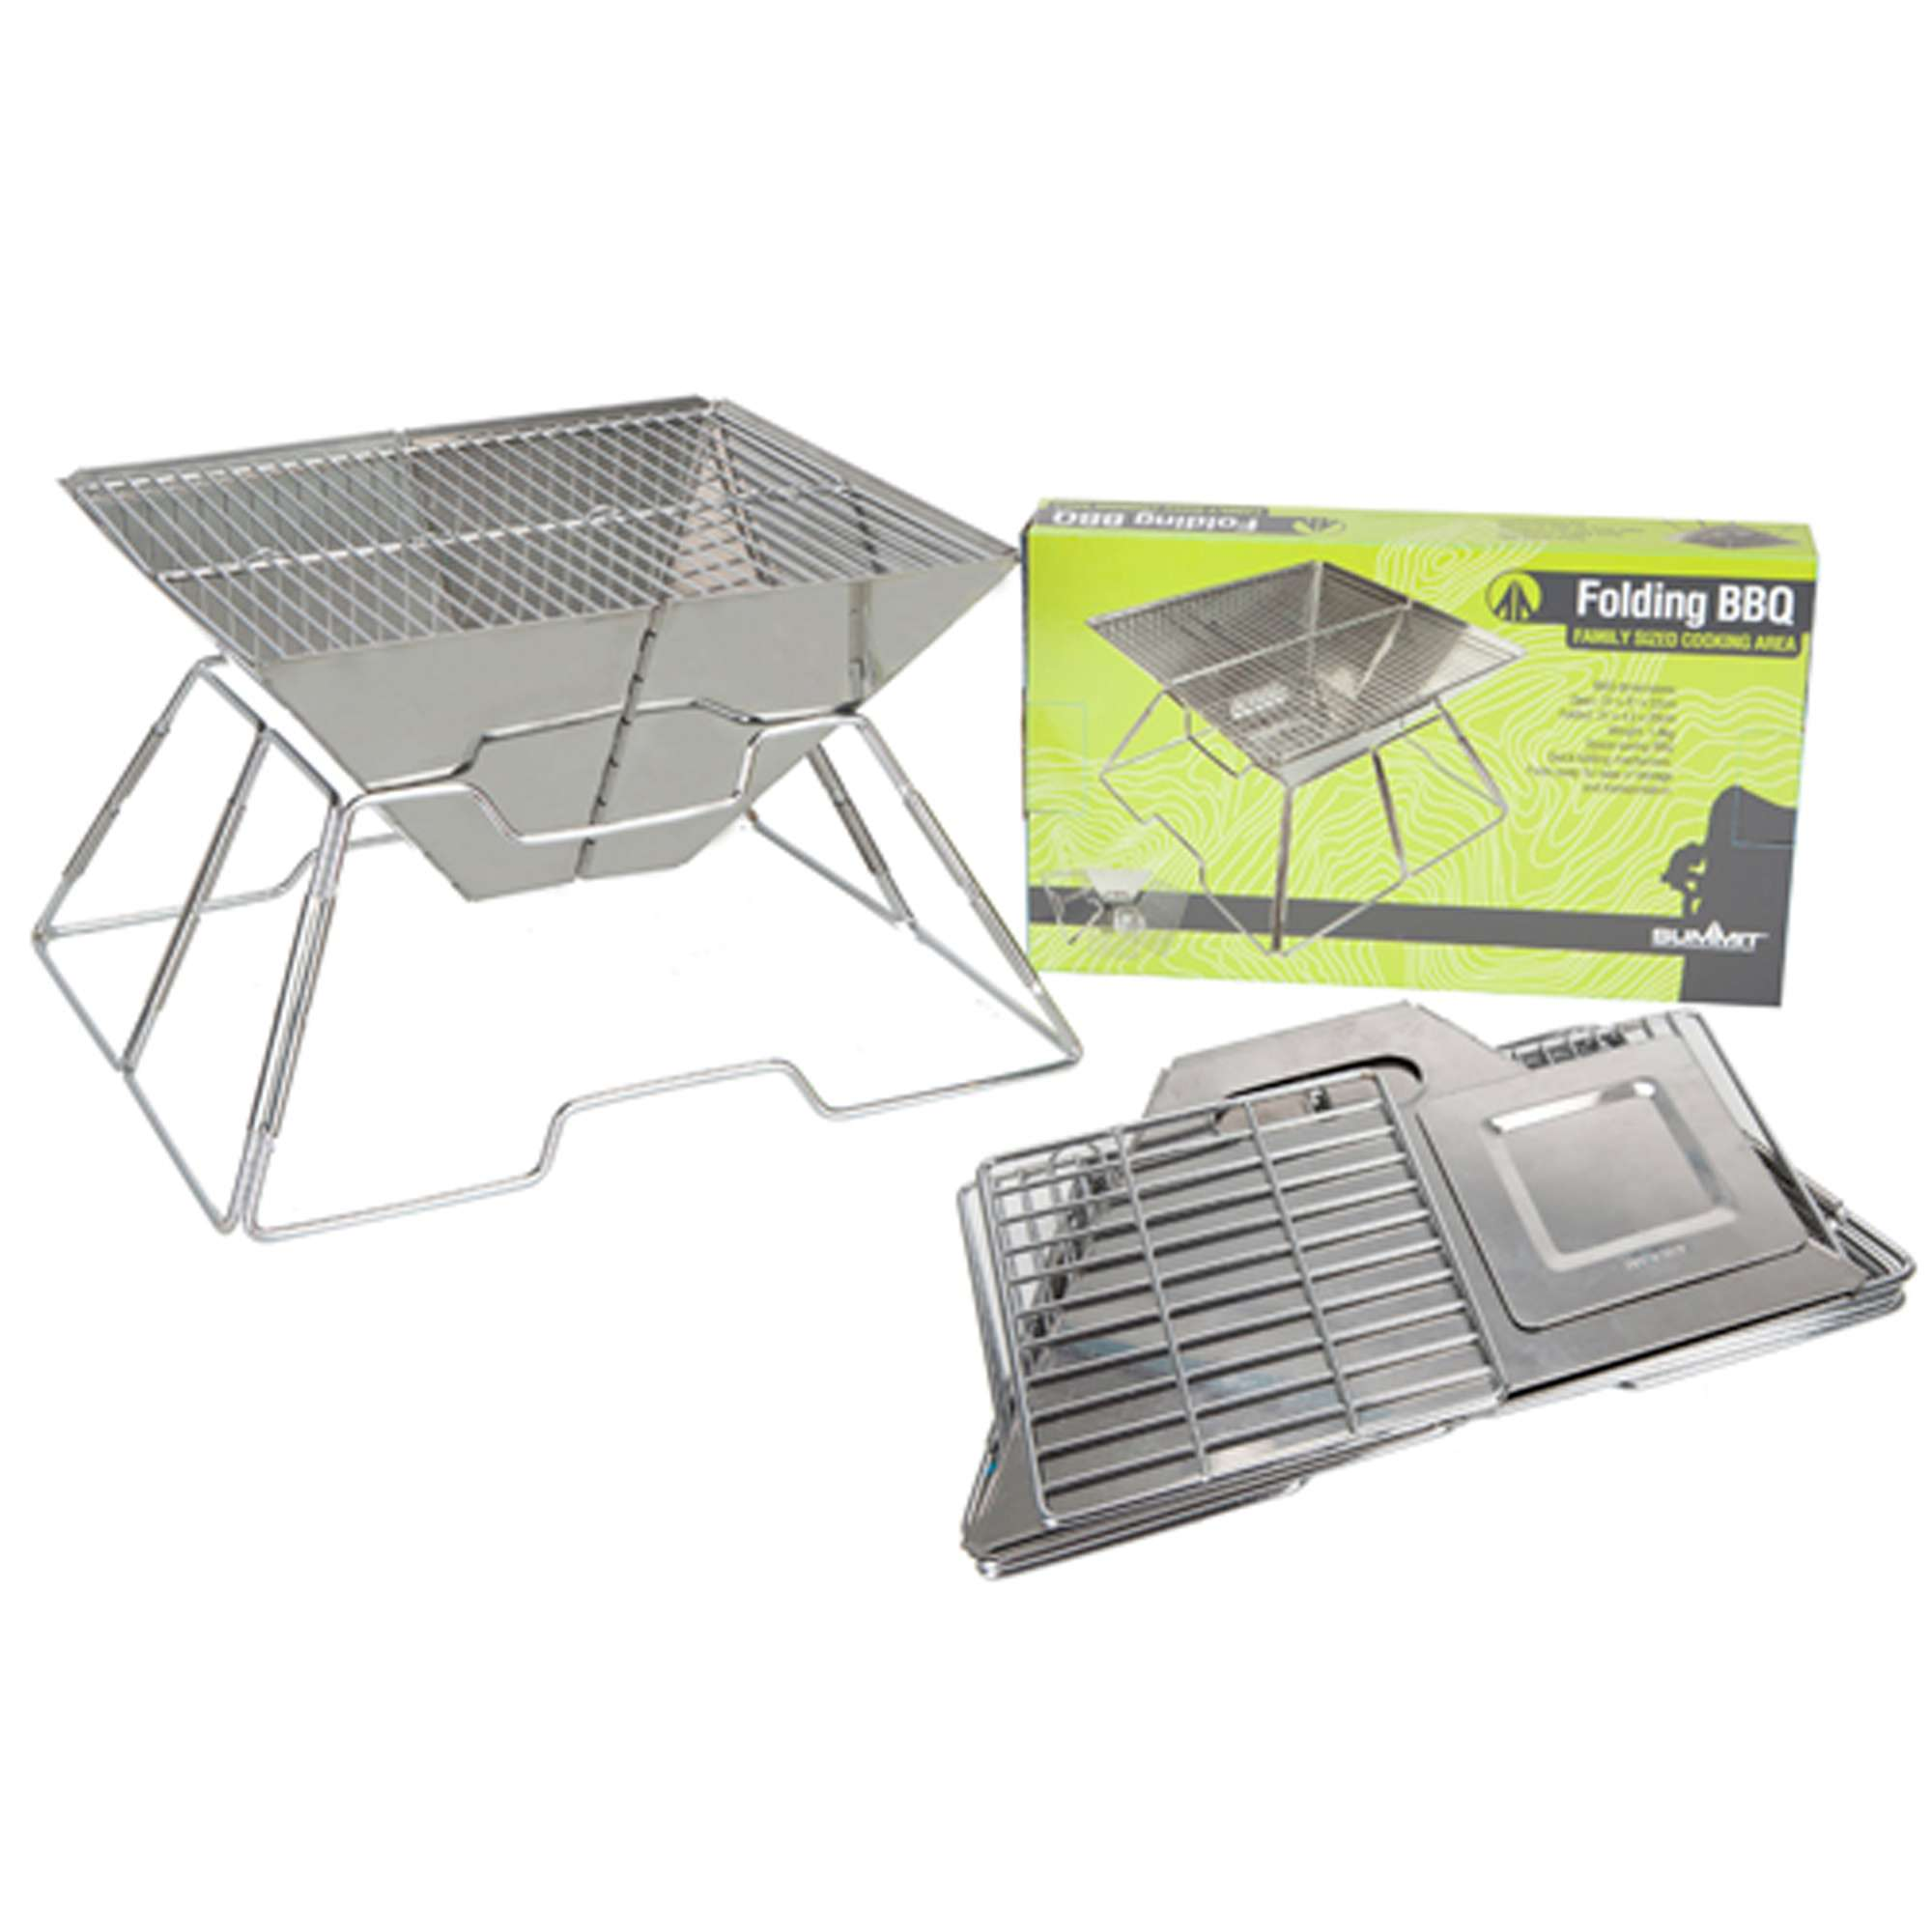 SUMMIT Foldable Stainless Steel BBQ